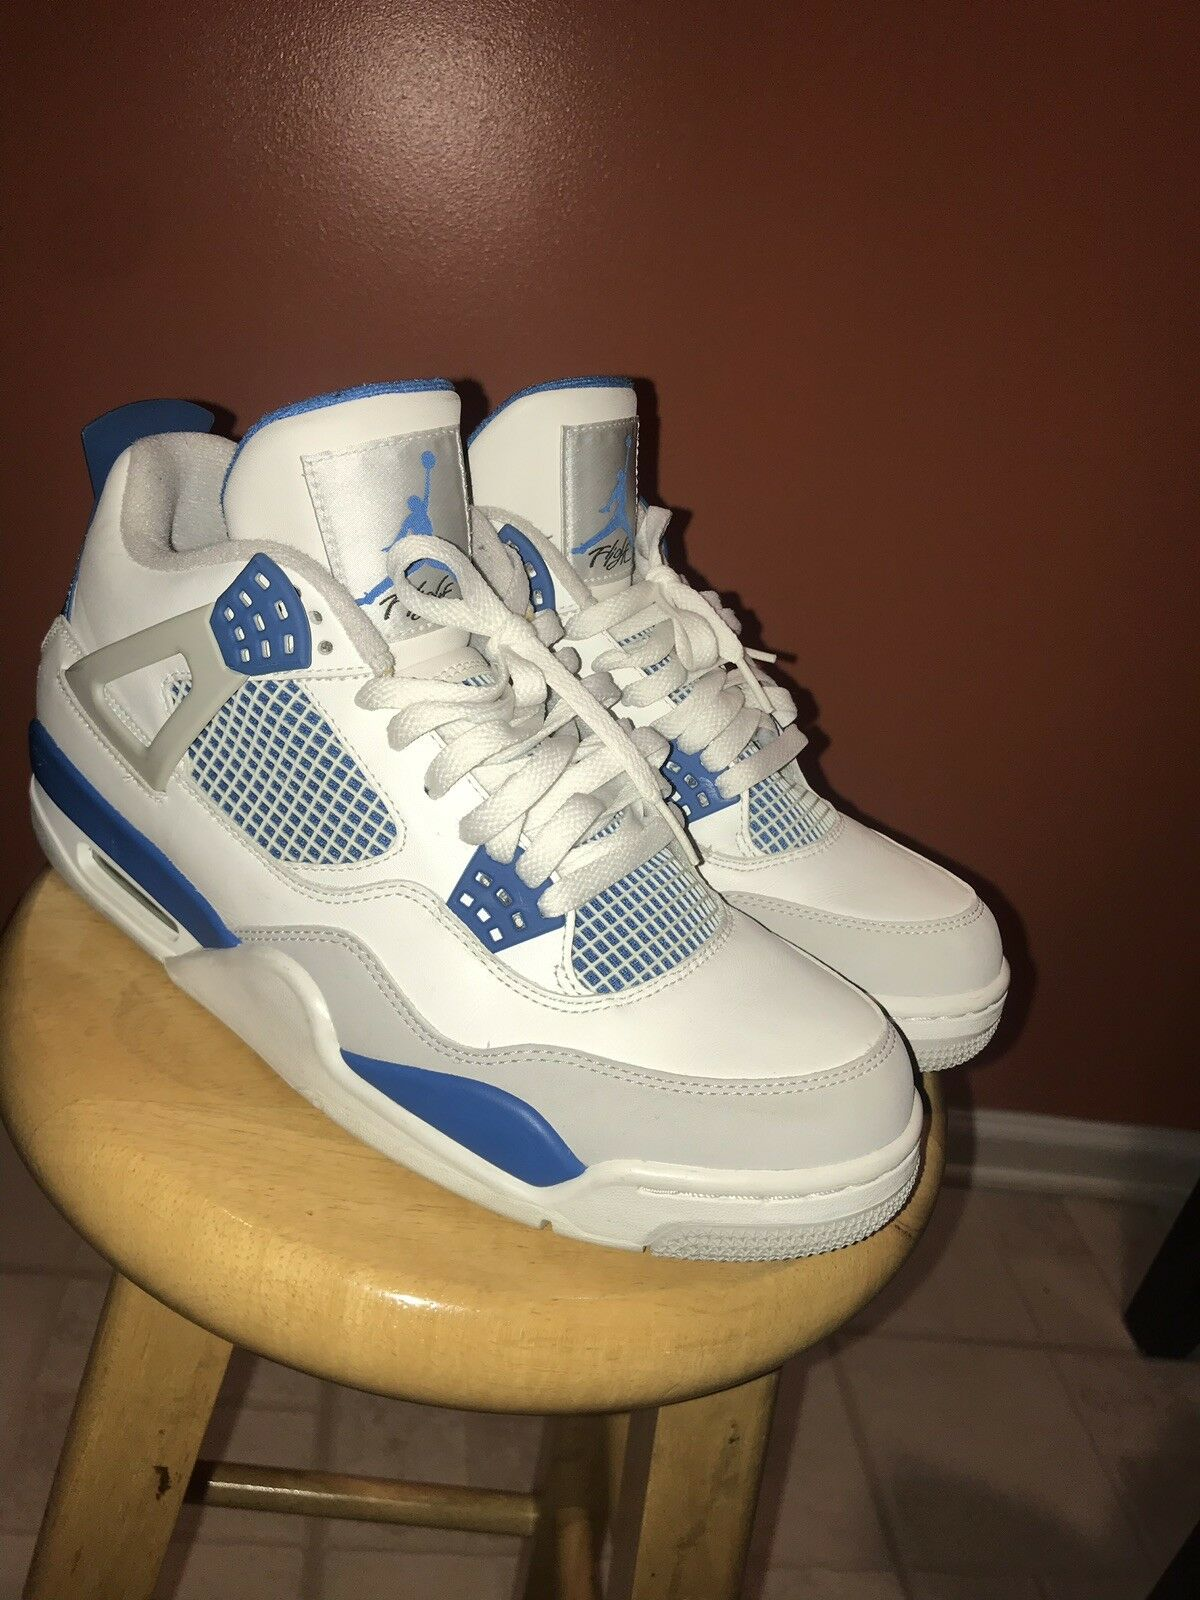 Nike air jordan retro 4 military bluee bluee bluee 6815c6